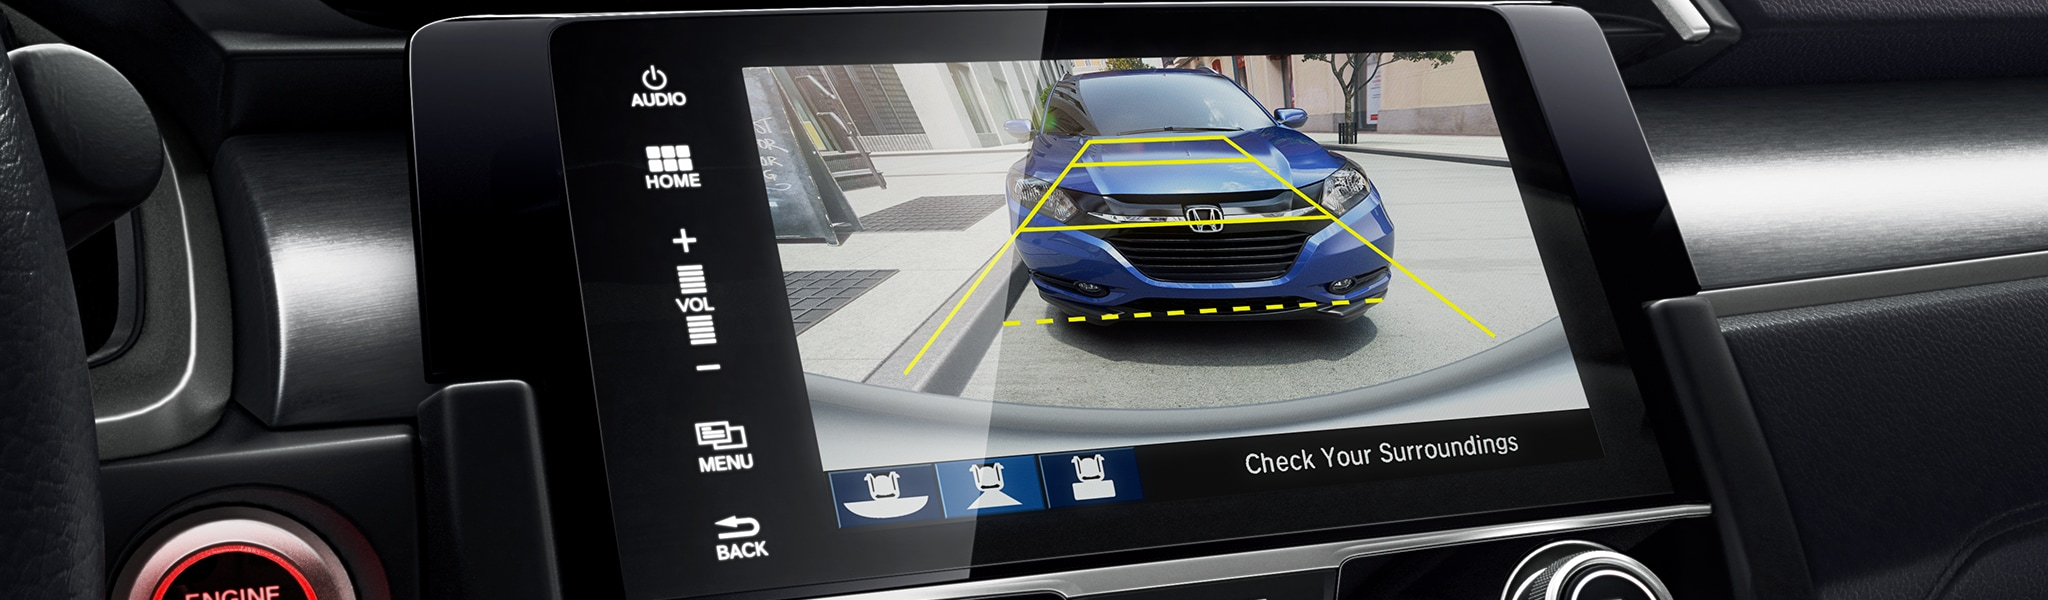 Rearview Camera Available on the new Honda Civic